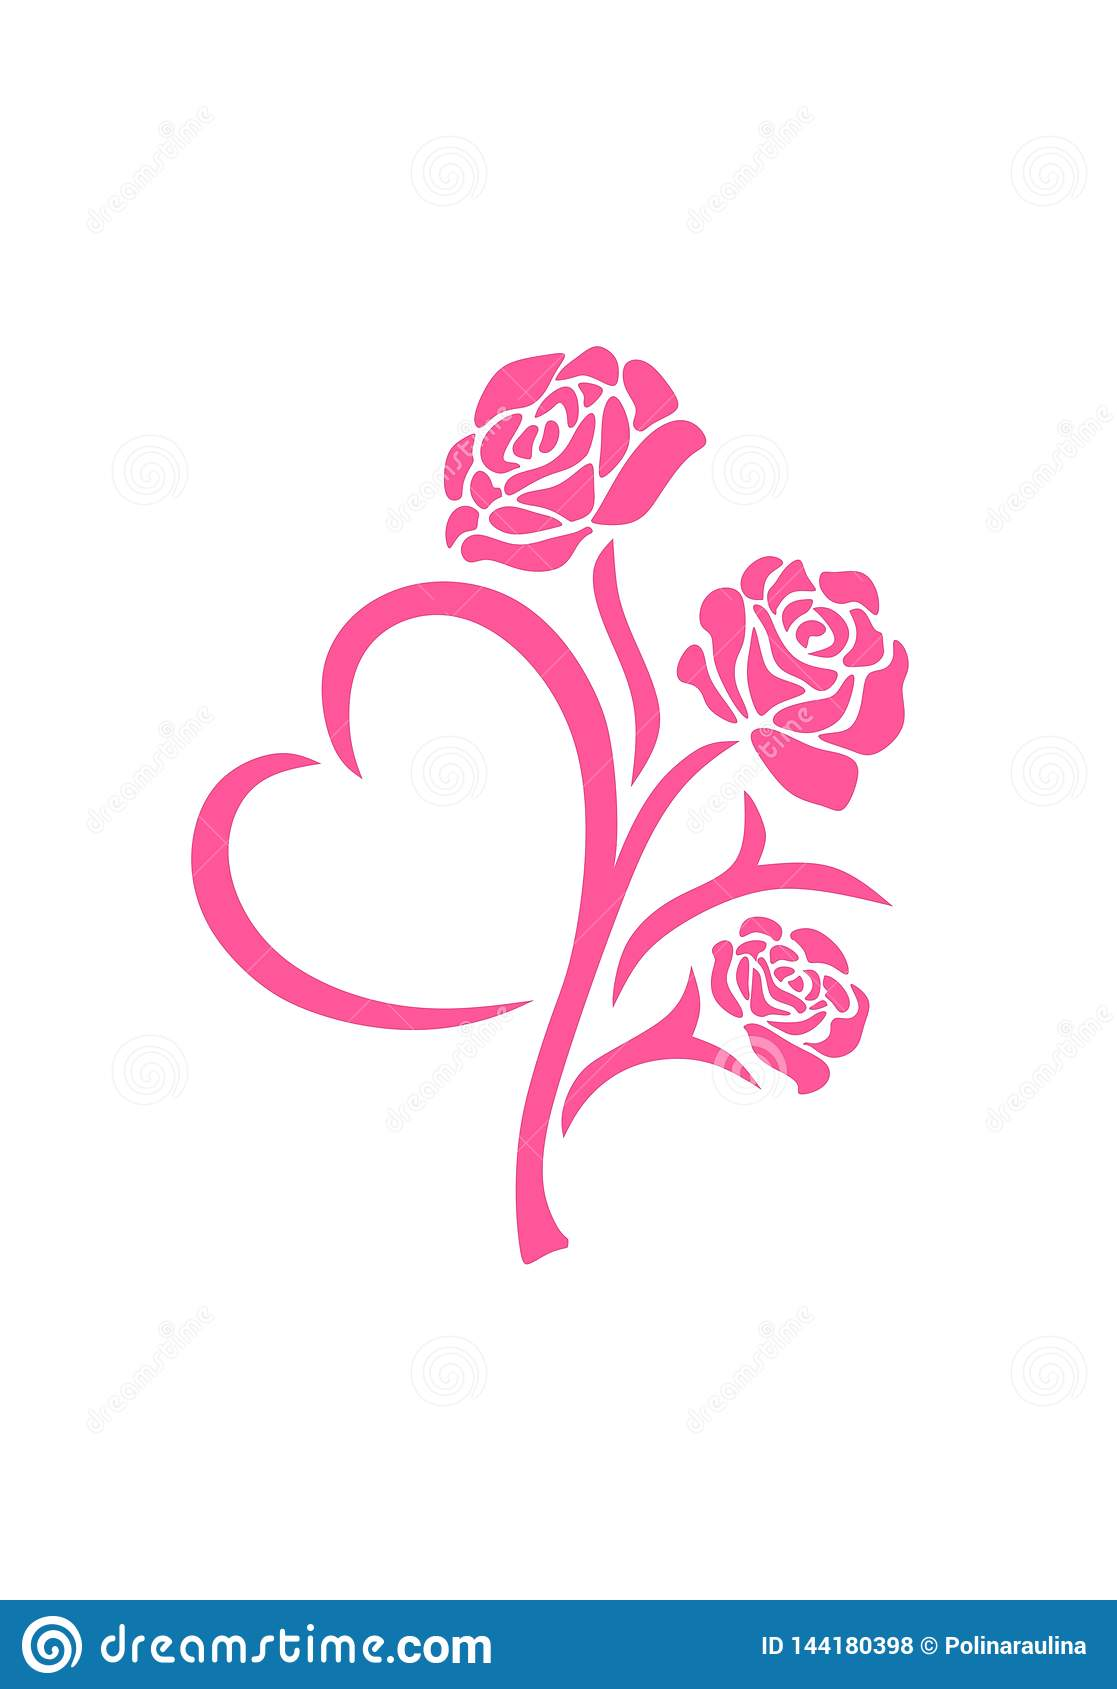 Vector silhouette of a pink roses flower in tattoo style with heart-shaped leaf isolated on white background.